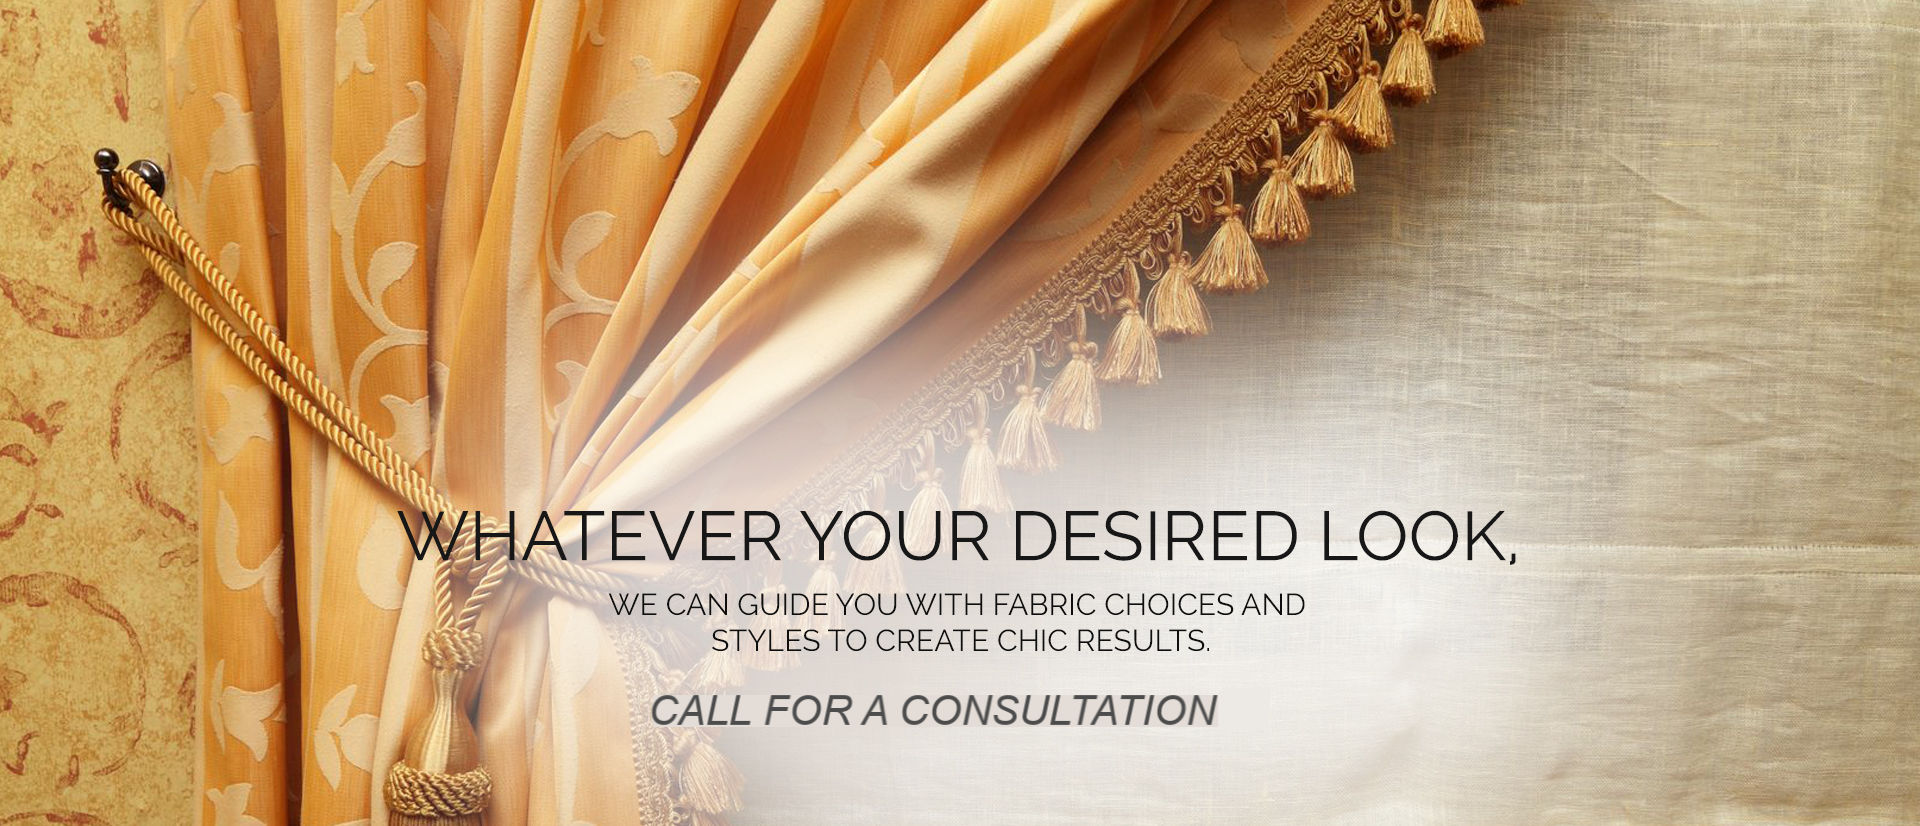 custom made drapes call for a consultation